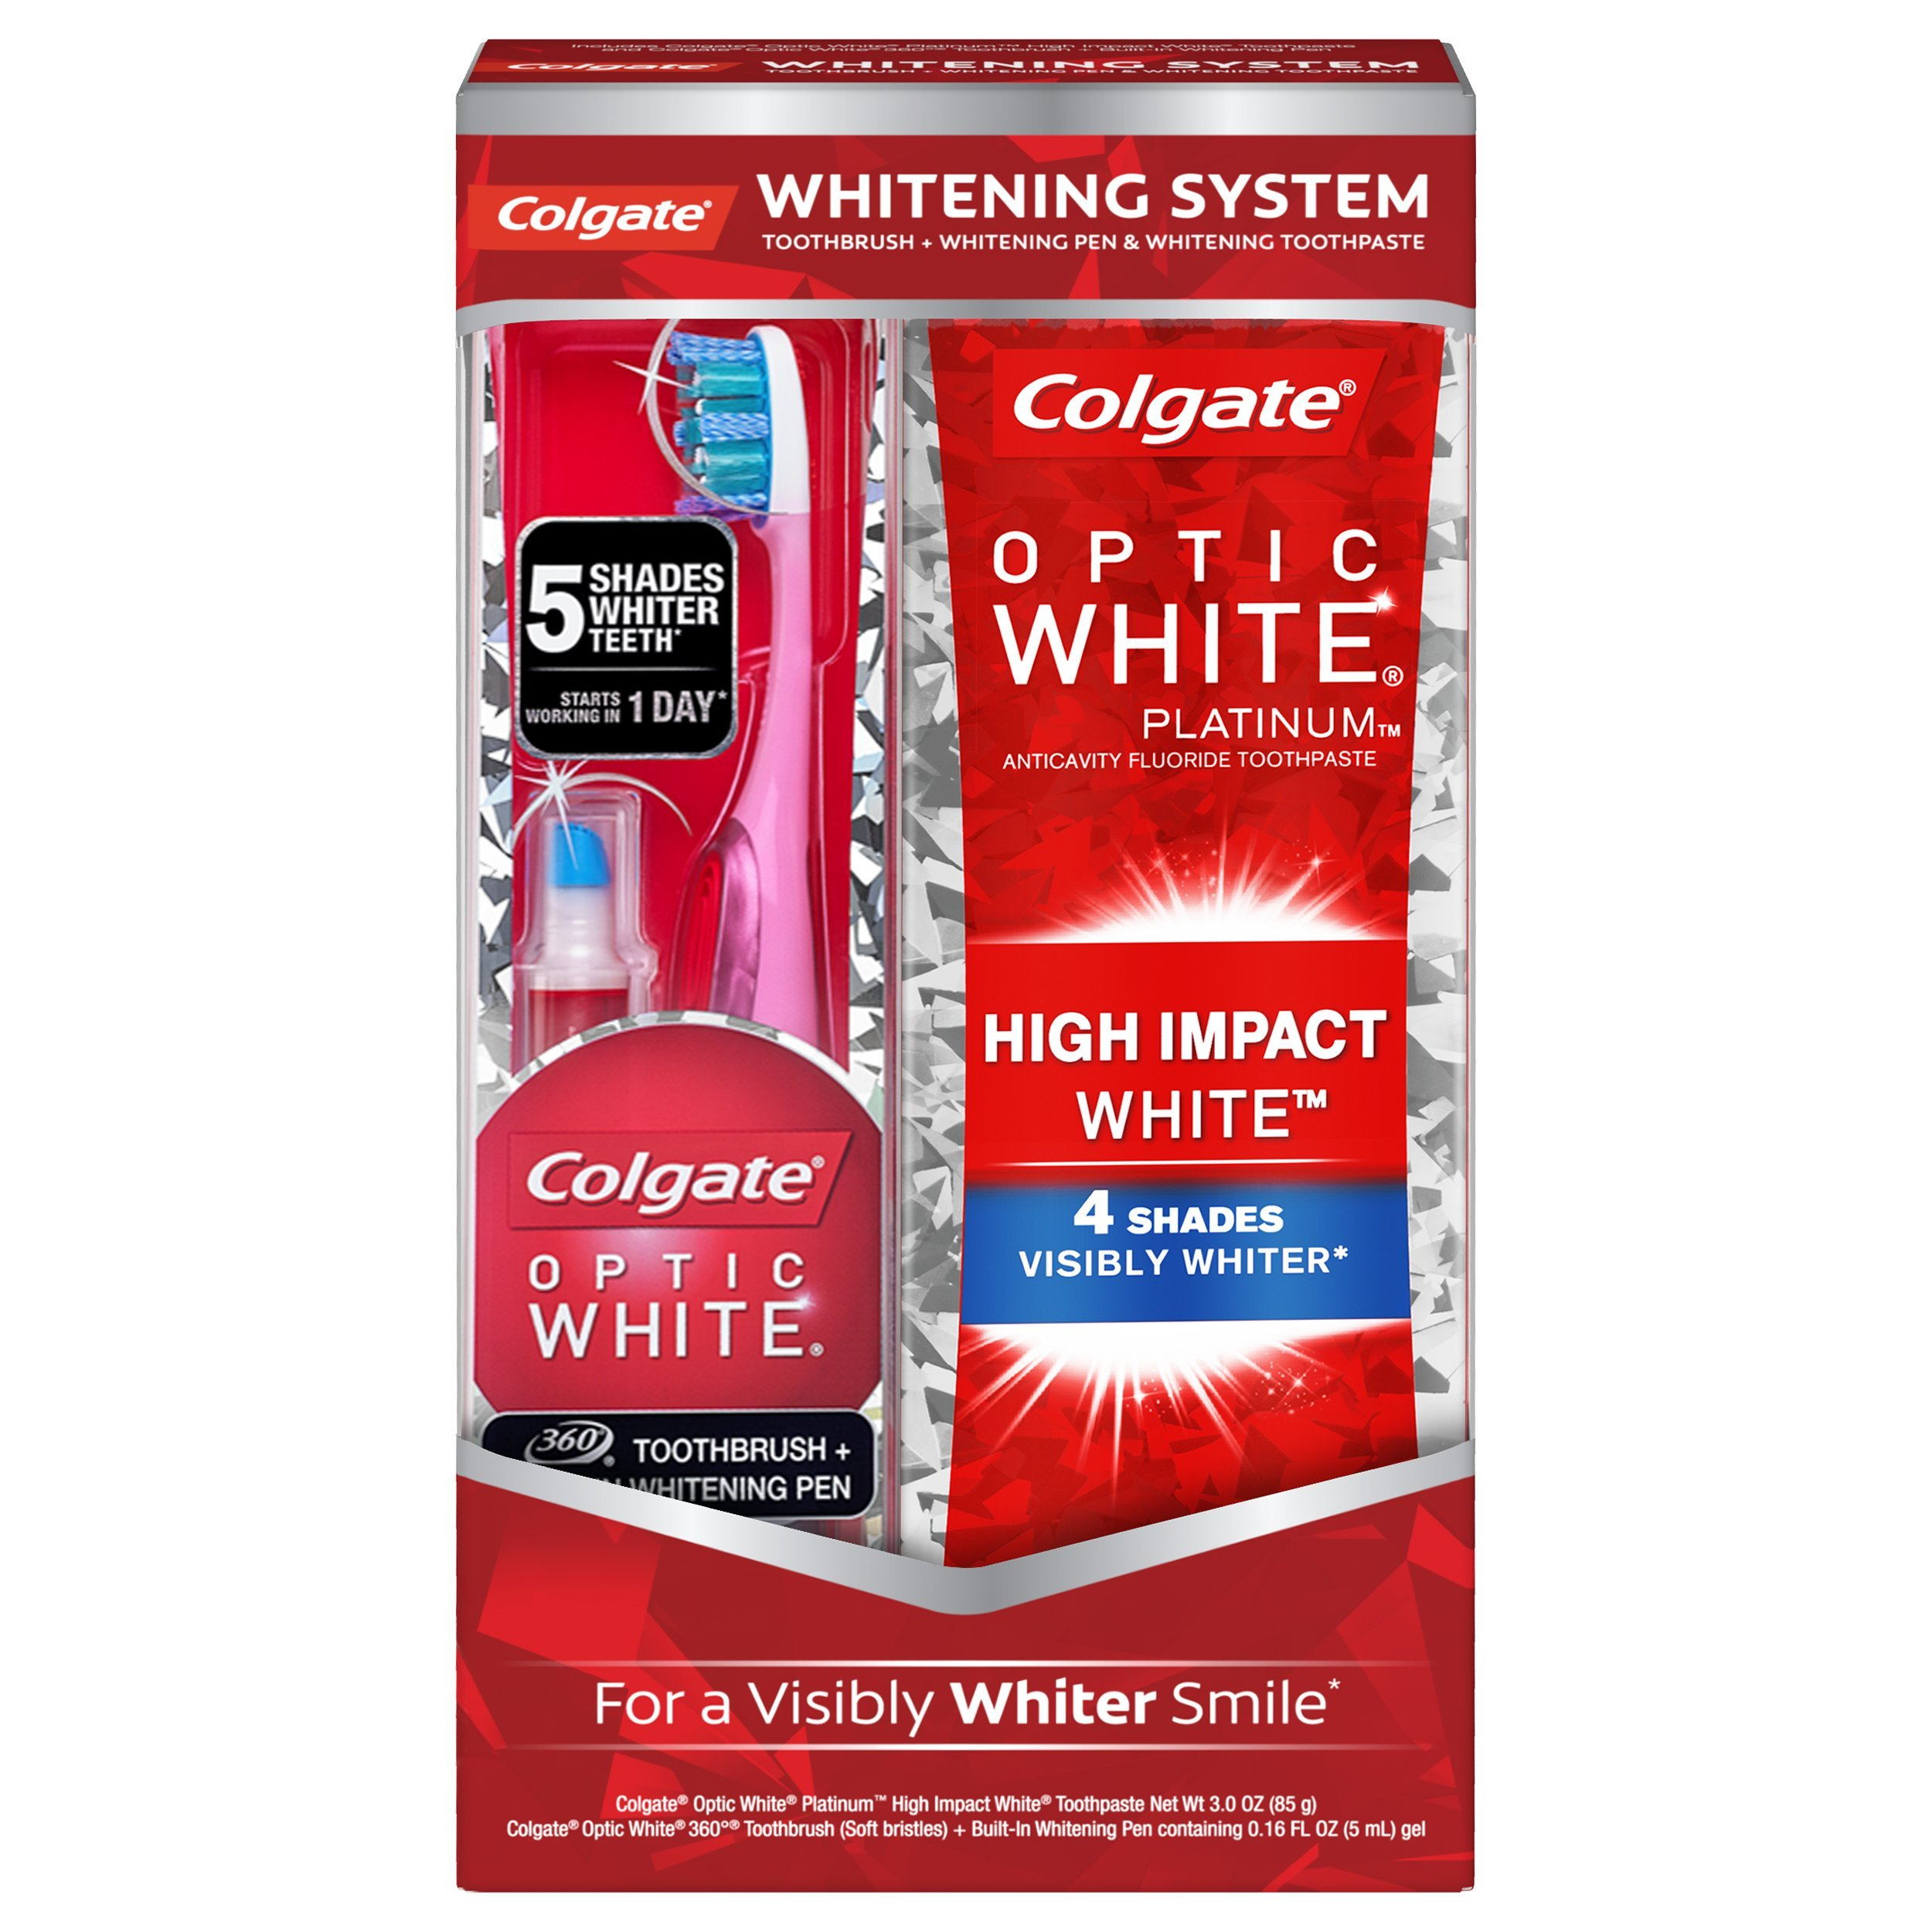 colgate toothbrush with whitening pen instructions